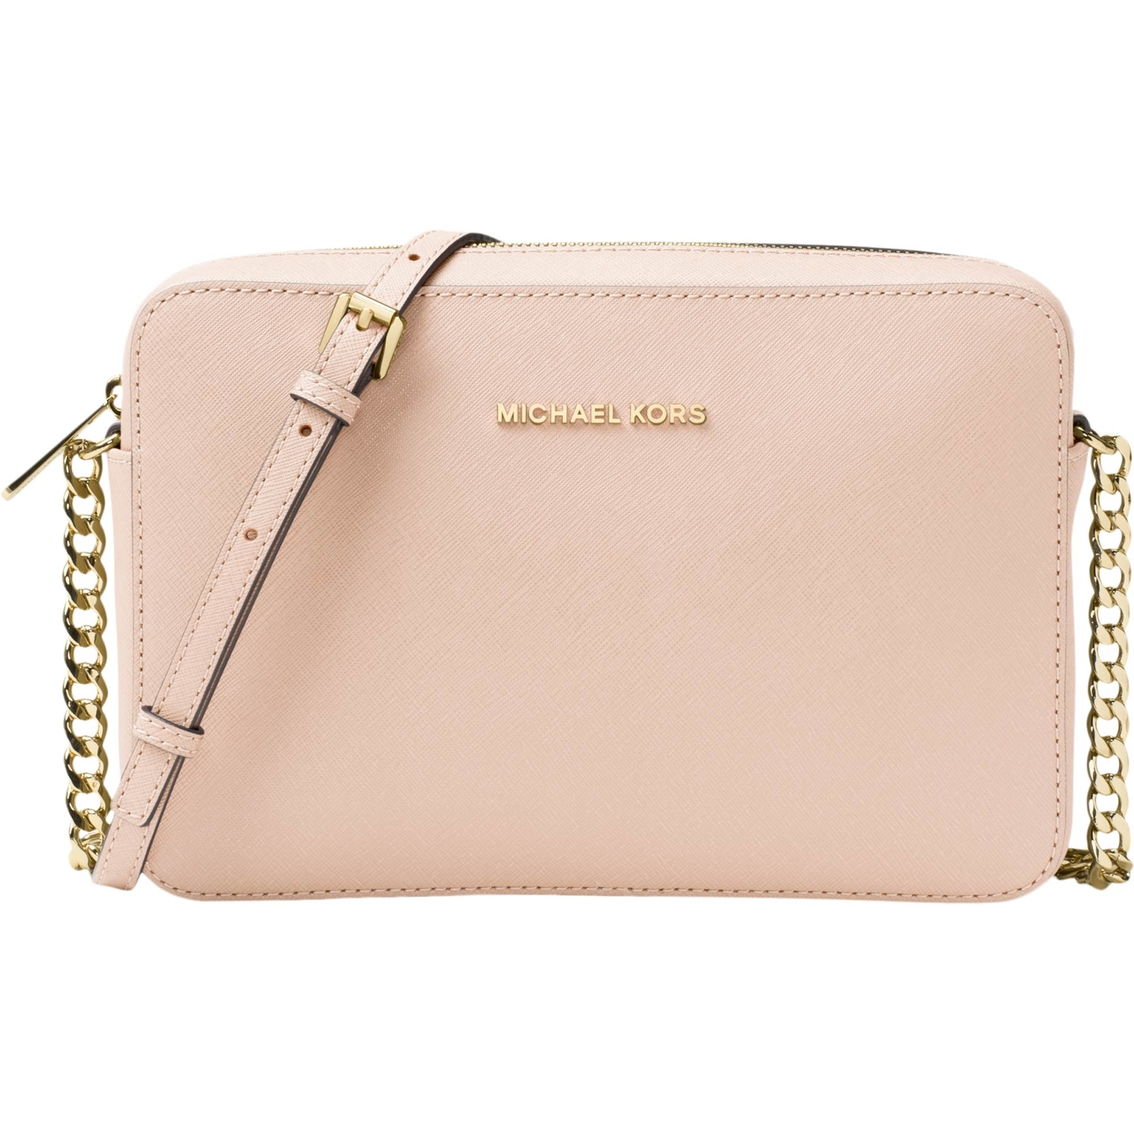 8d101eb3099c Michael Kors Jet Set Travel Large East West Crossbody Pink ...